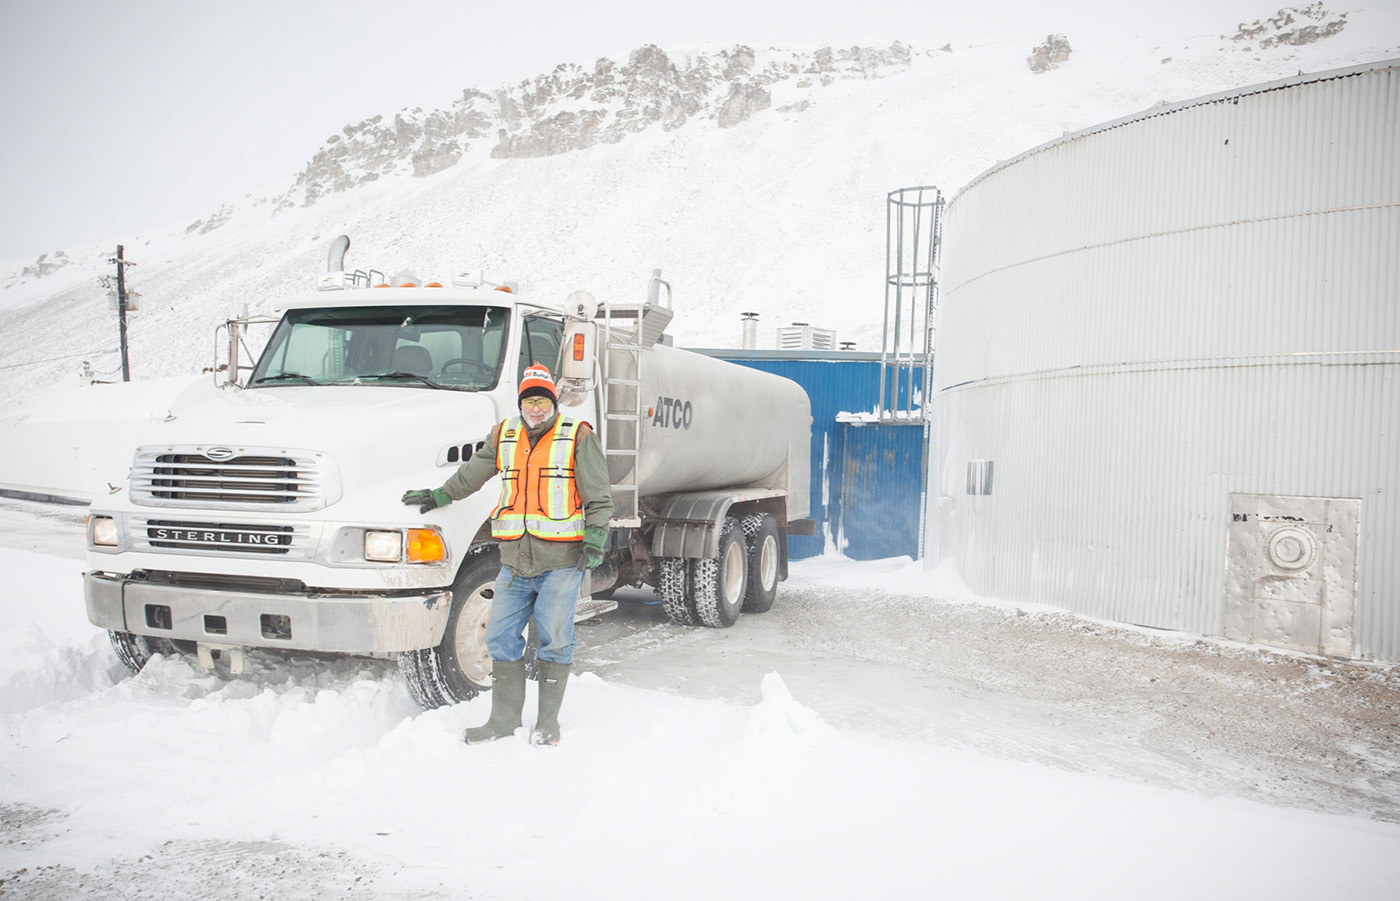 Resolute Bay Fuel Management